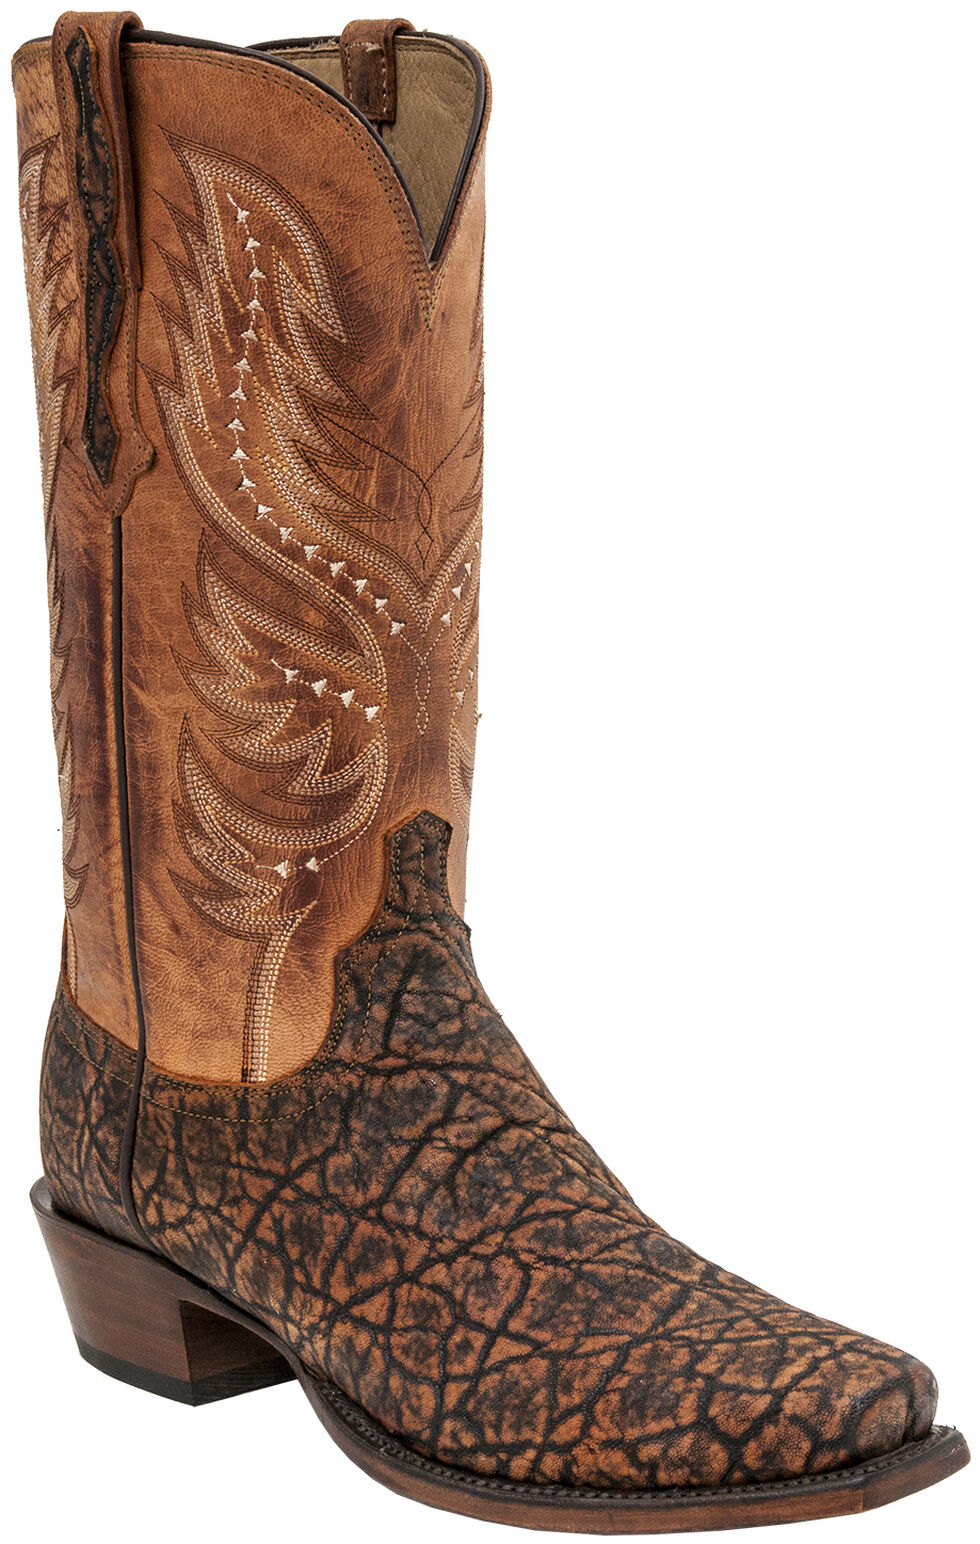 Lucchese Handmade Wes Elephant Exotic Western Boots - Square Toe , Cognac, hi-res